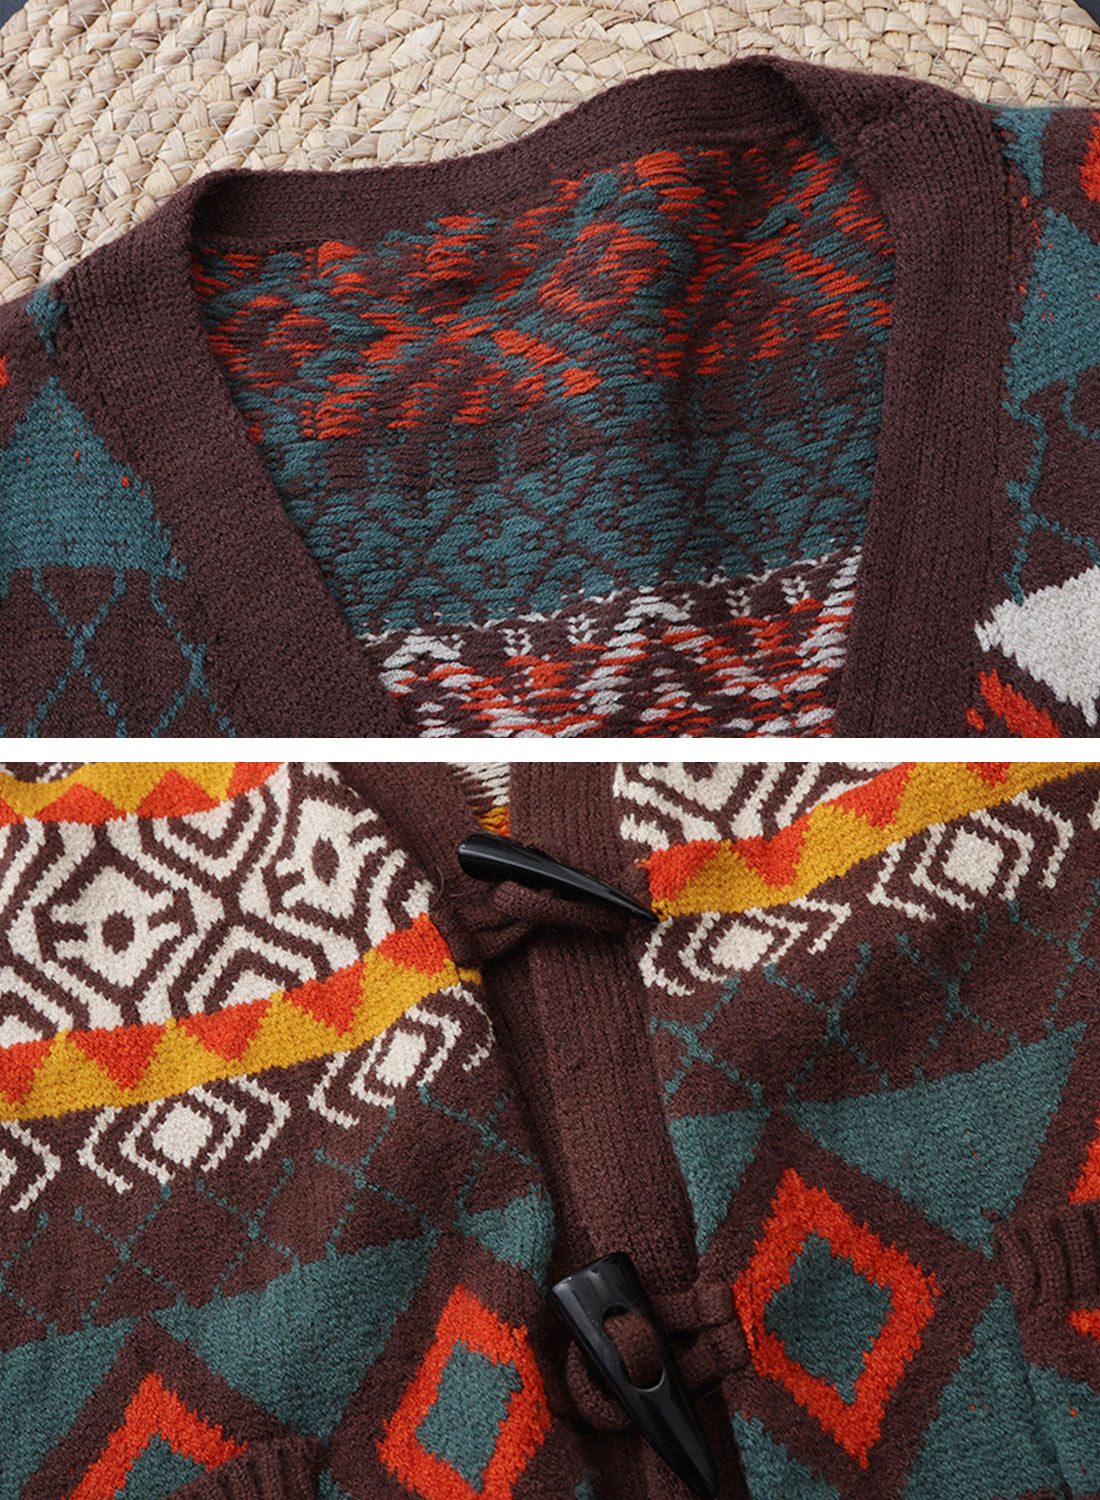 You Know Vintage Cardigan Sweater Details 1